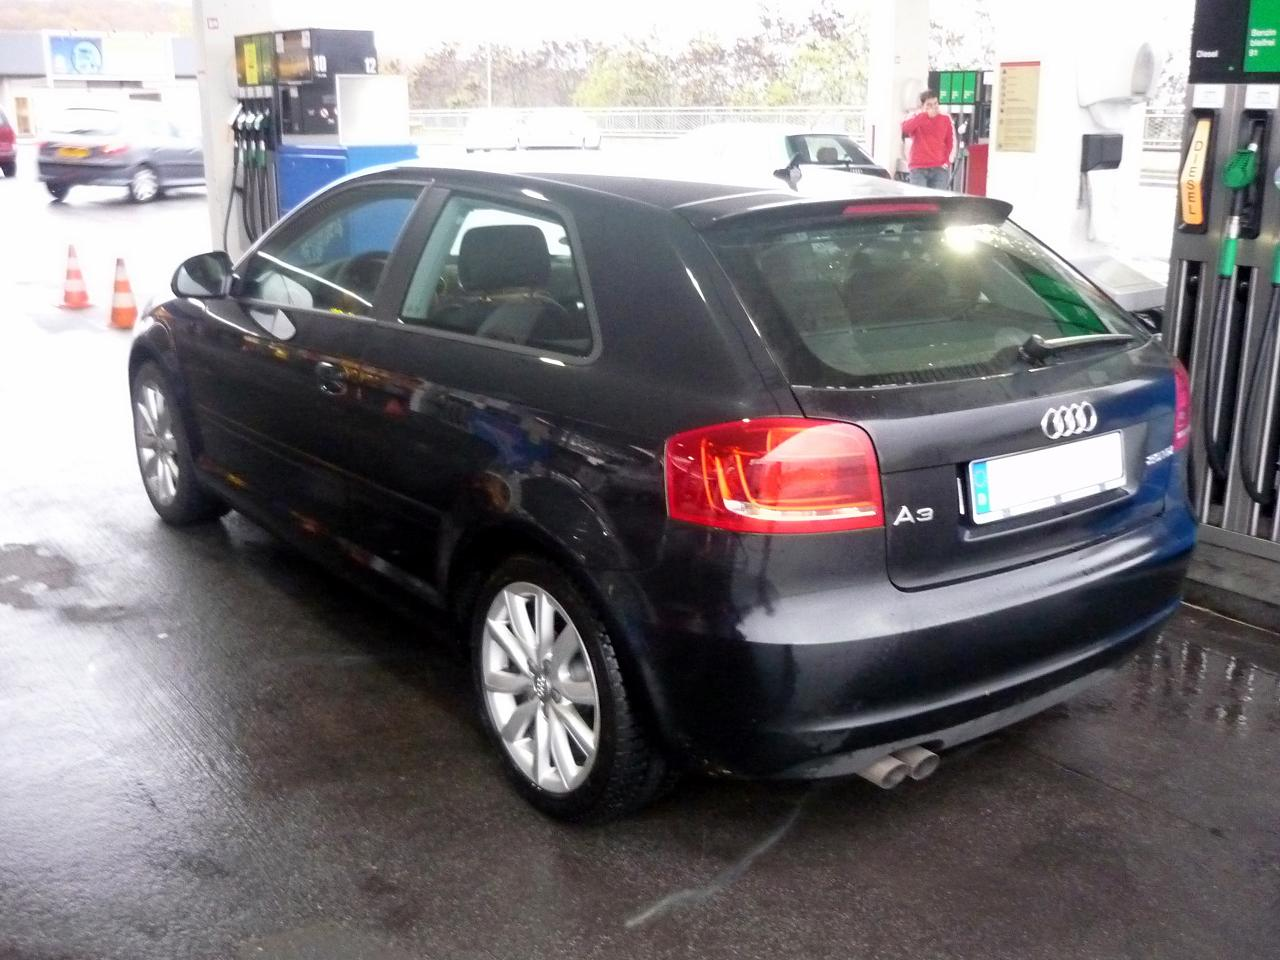 guitigefilmpjes video pictures audi a3 ambition a3 sportback s line. Black Bedroom Furniture Sets. Home Design Ideas